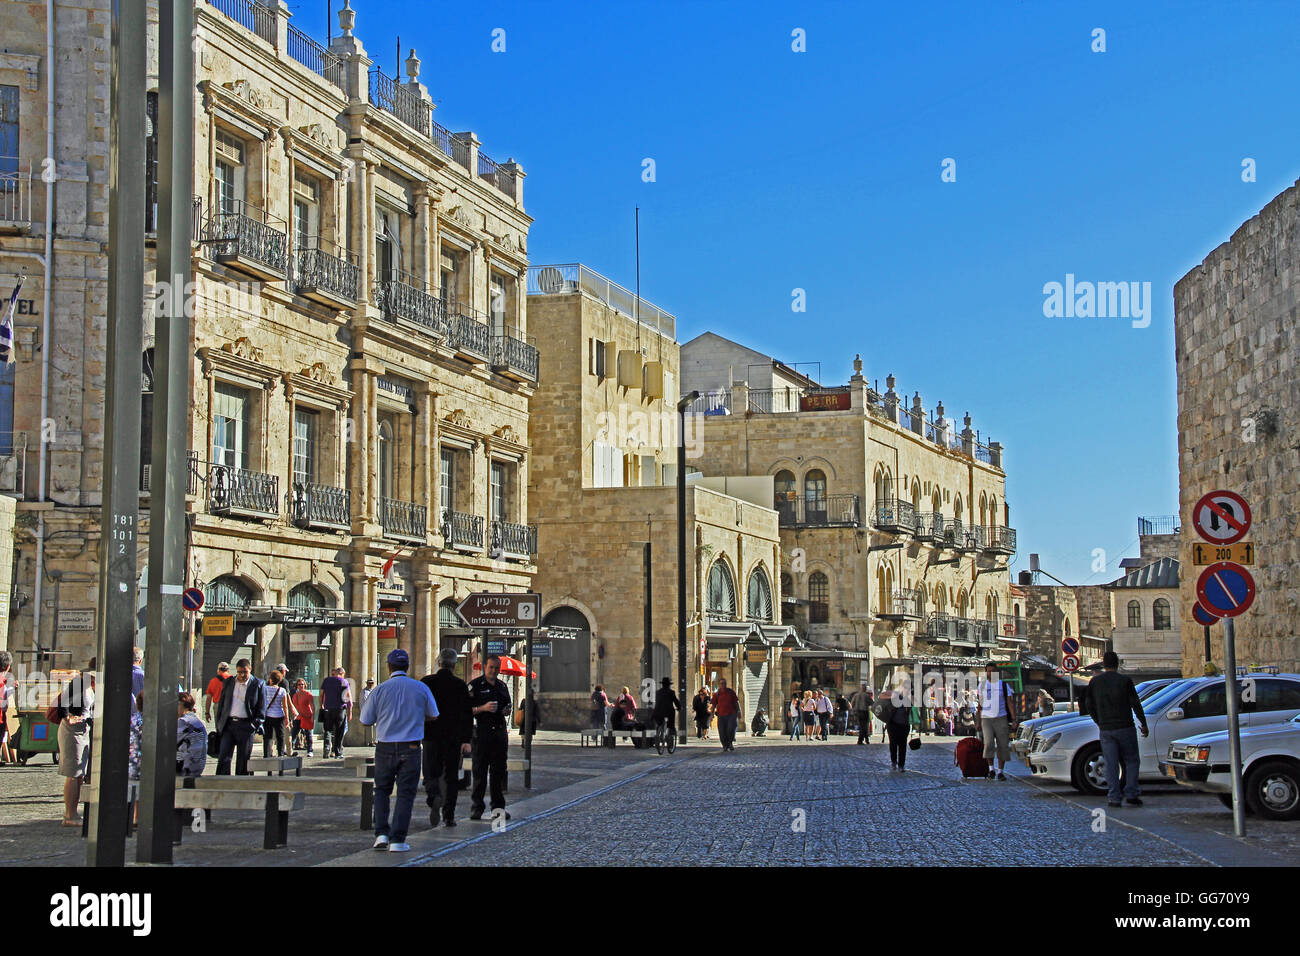 Street entrance to Old Jerusalem just inside Jaffa Gate busy with tourists visiting shops. - Stock Image